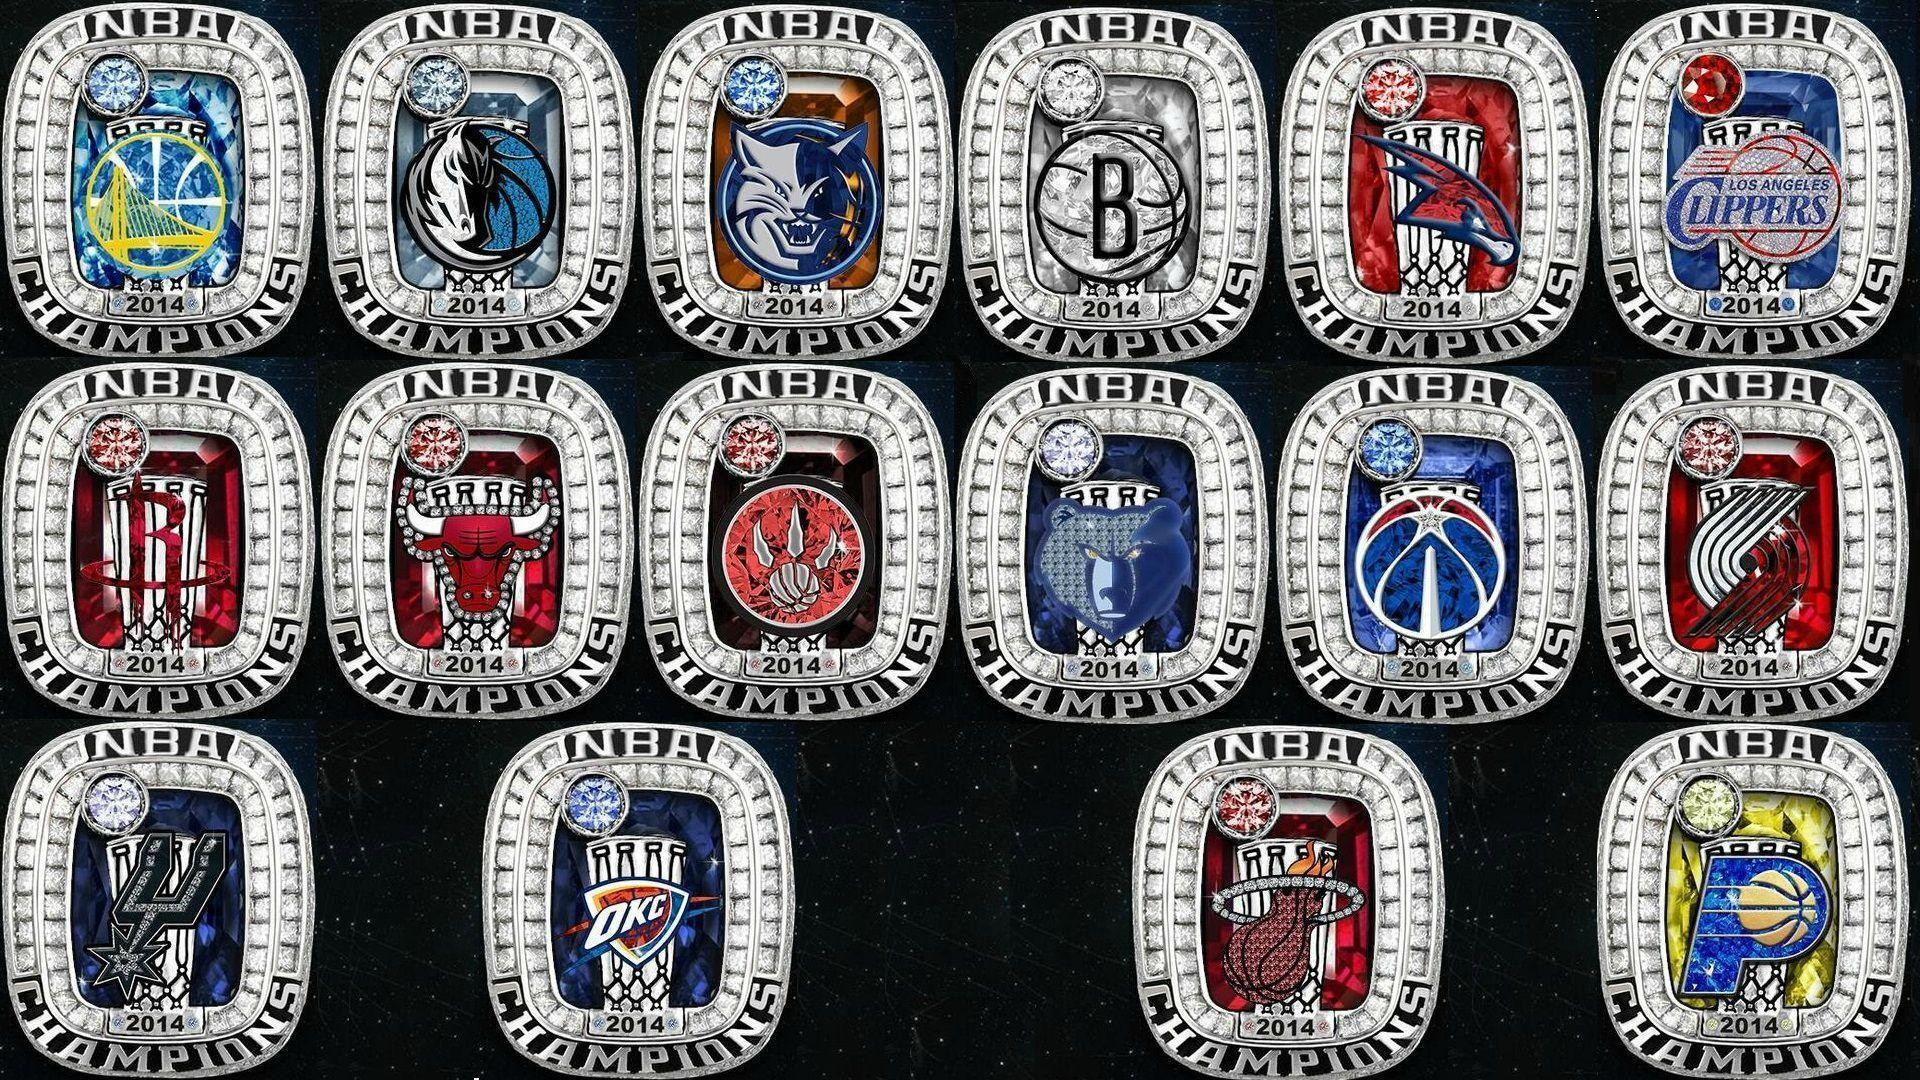 Res: 1920x1080, The NBA tweeted out 2014 championship rings for each team : nba